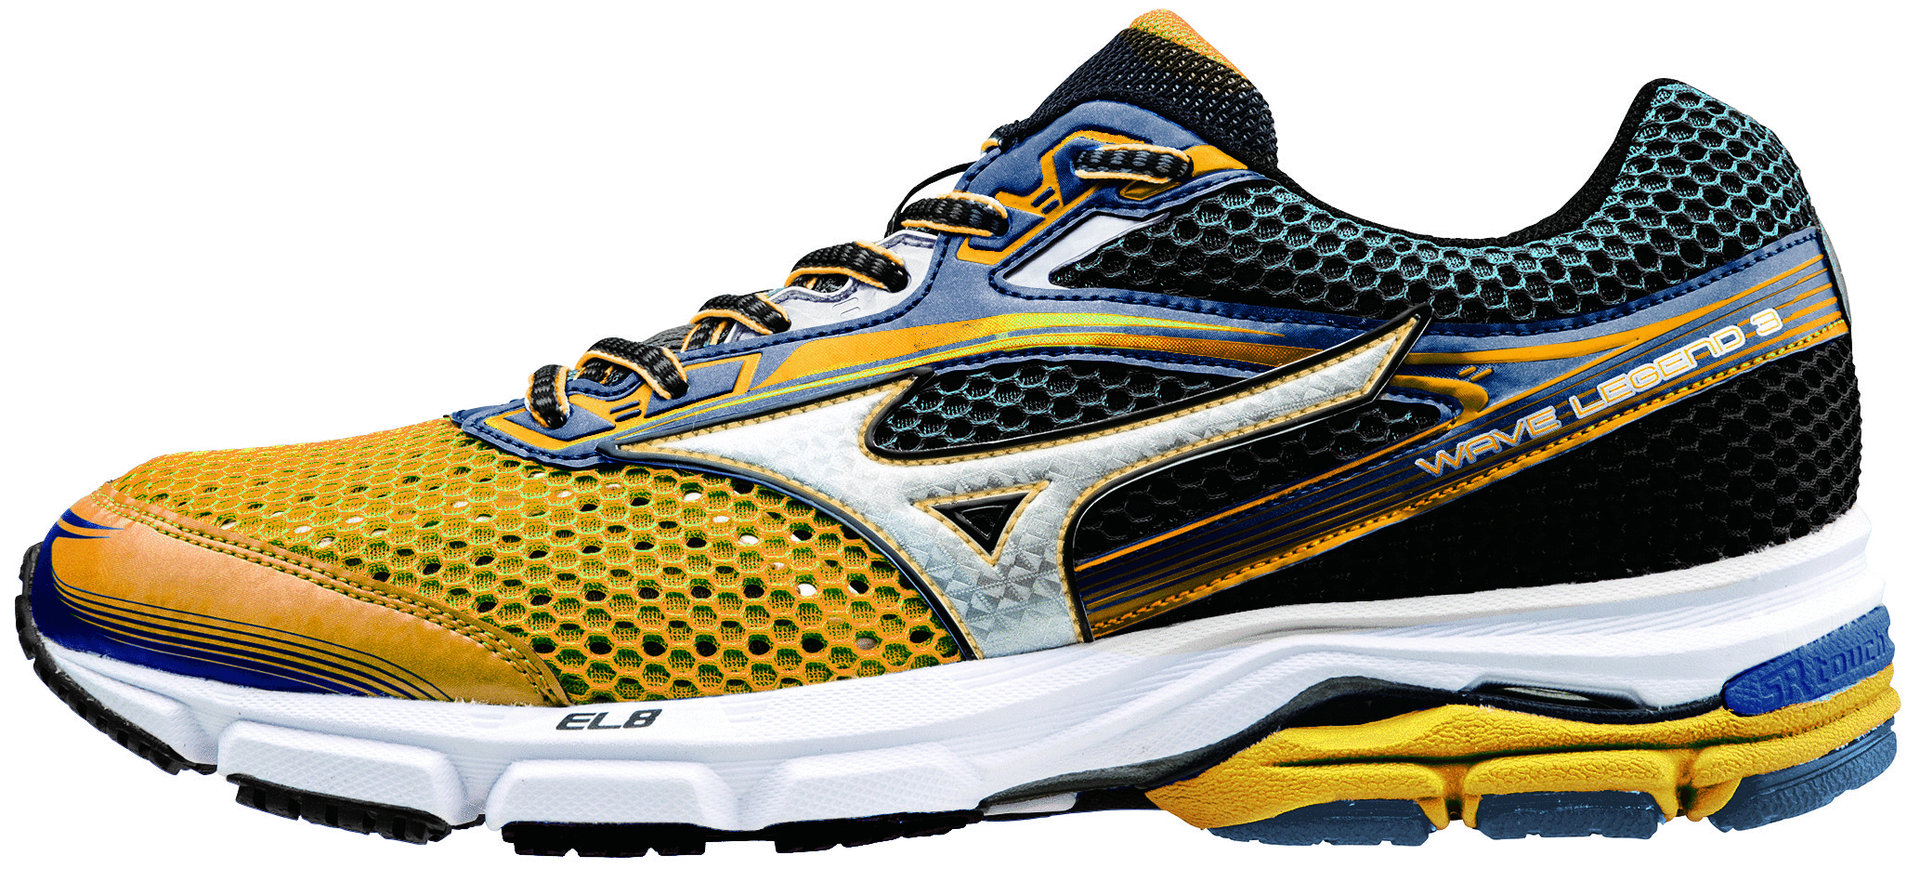 MIZUNO WAVE LEGEND 3 - ENVINYA SPORTS 9c58c4f0de7